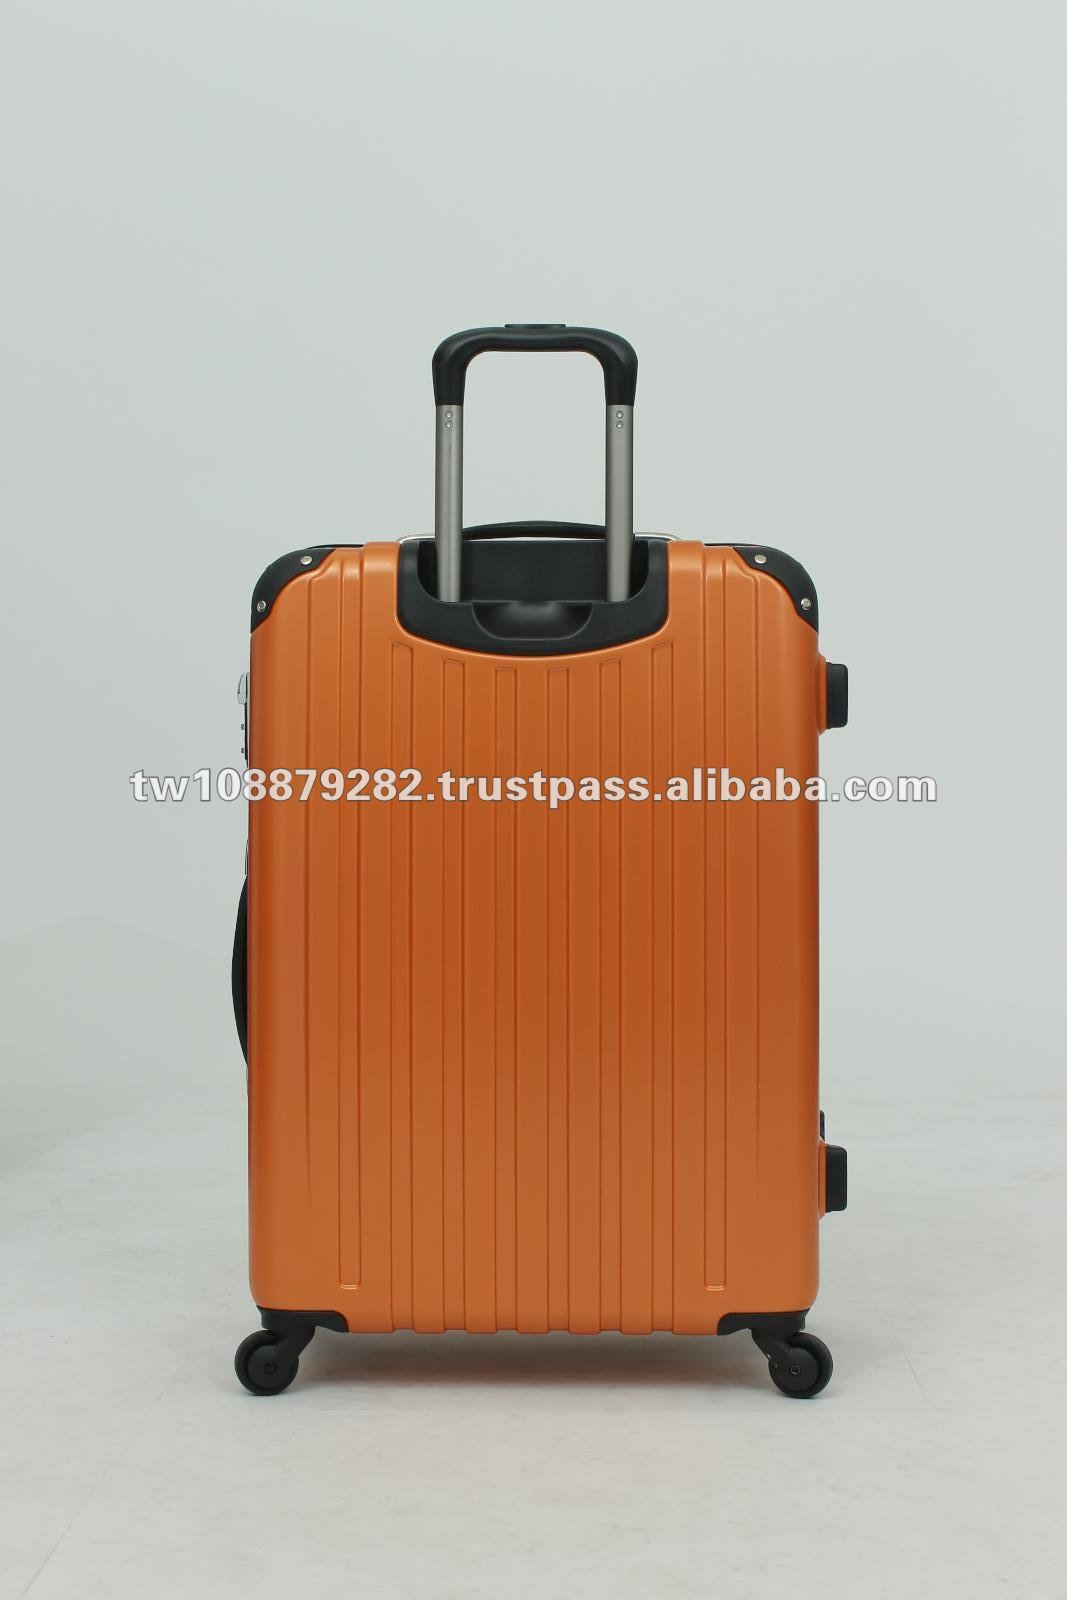 Aluminum Frame Hard Suitcase100% PC Trolley Case